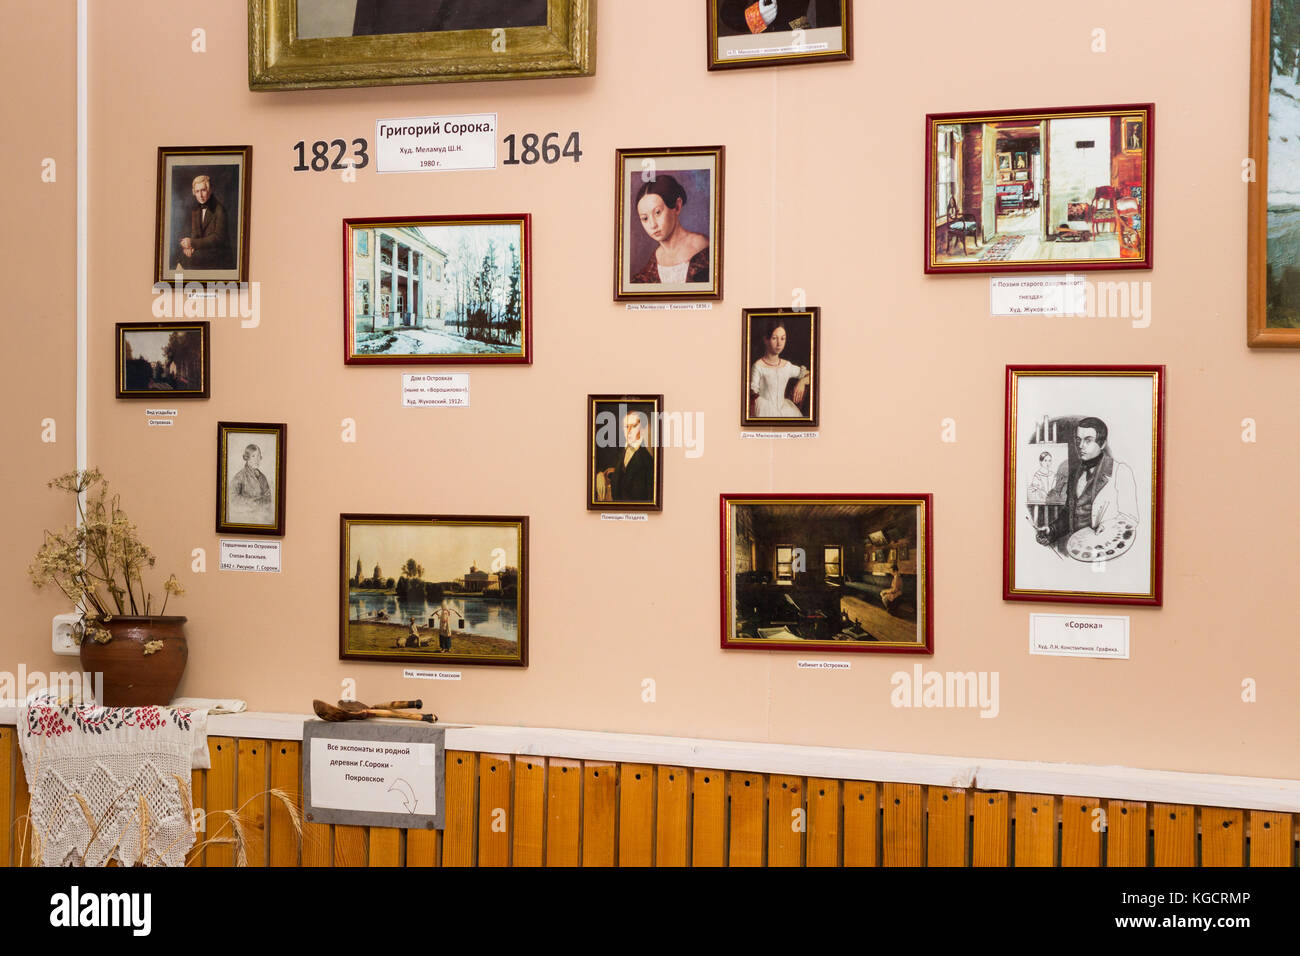 Russian artist Grigory Soroka. The exposition in the Museum. - Stock Image